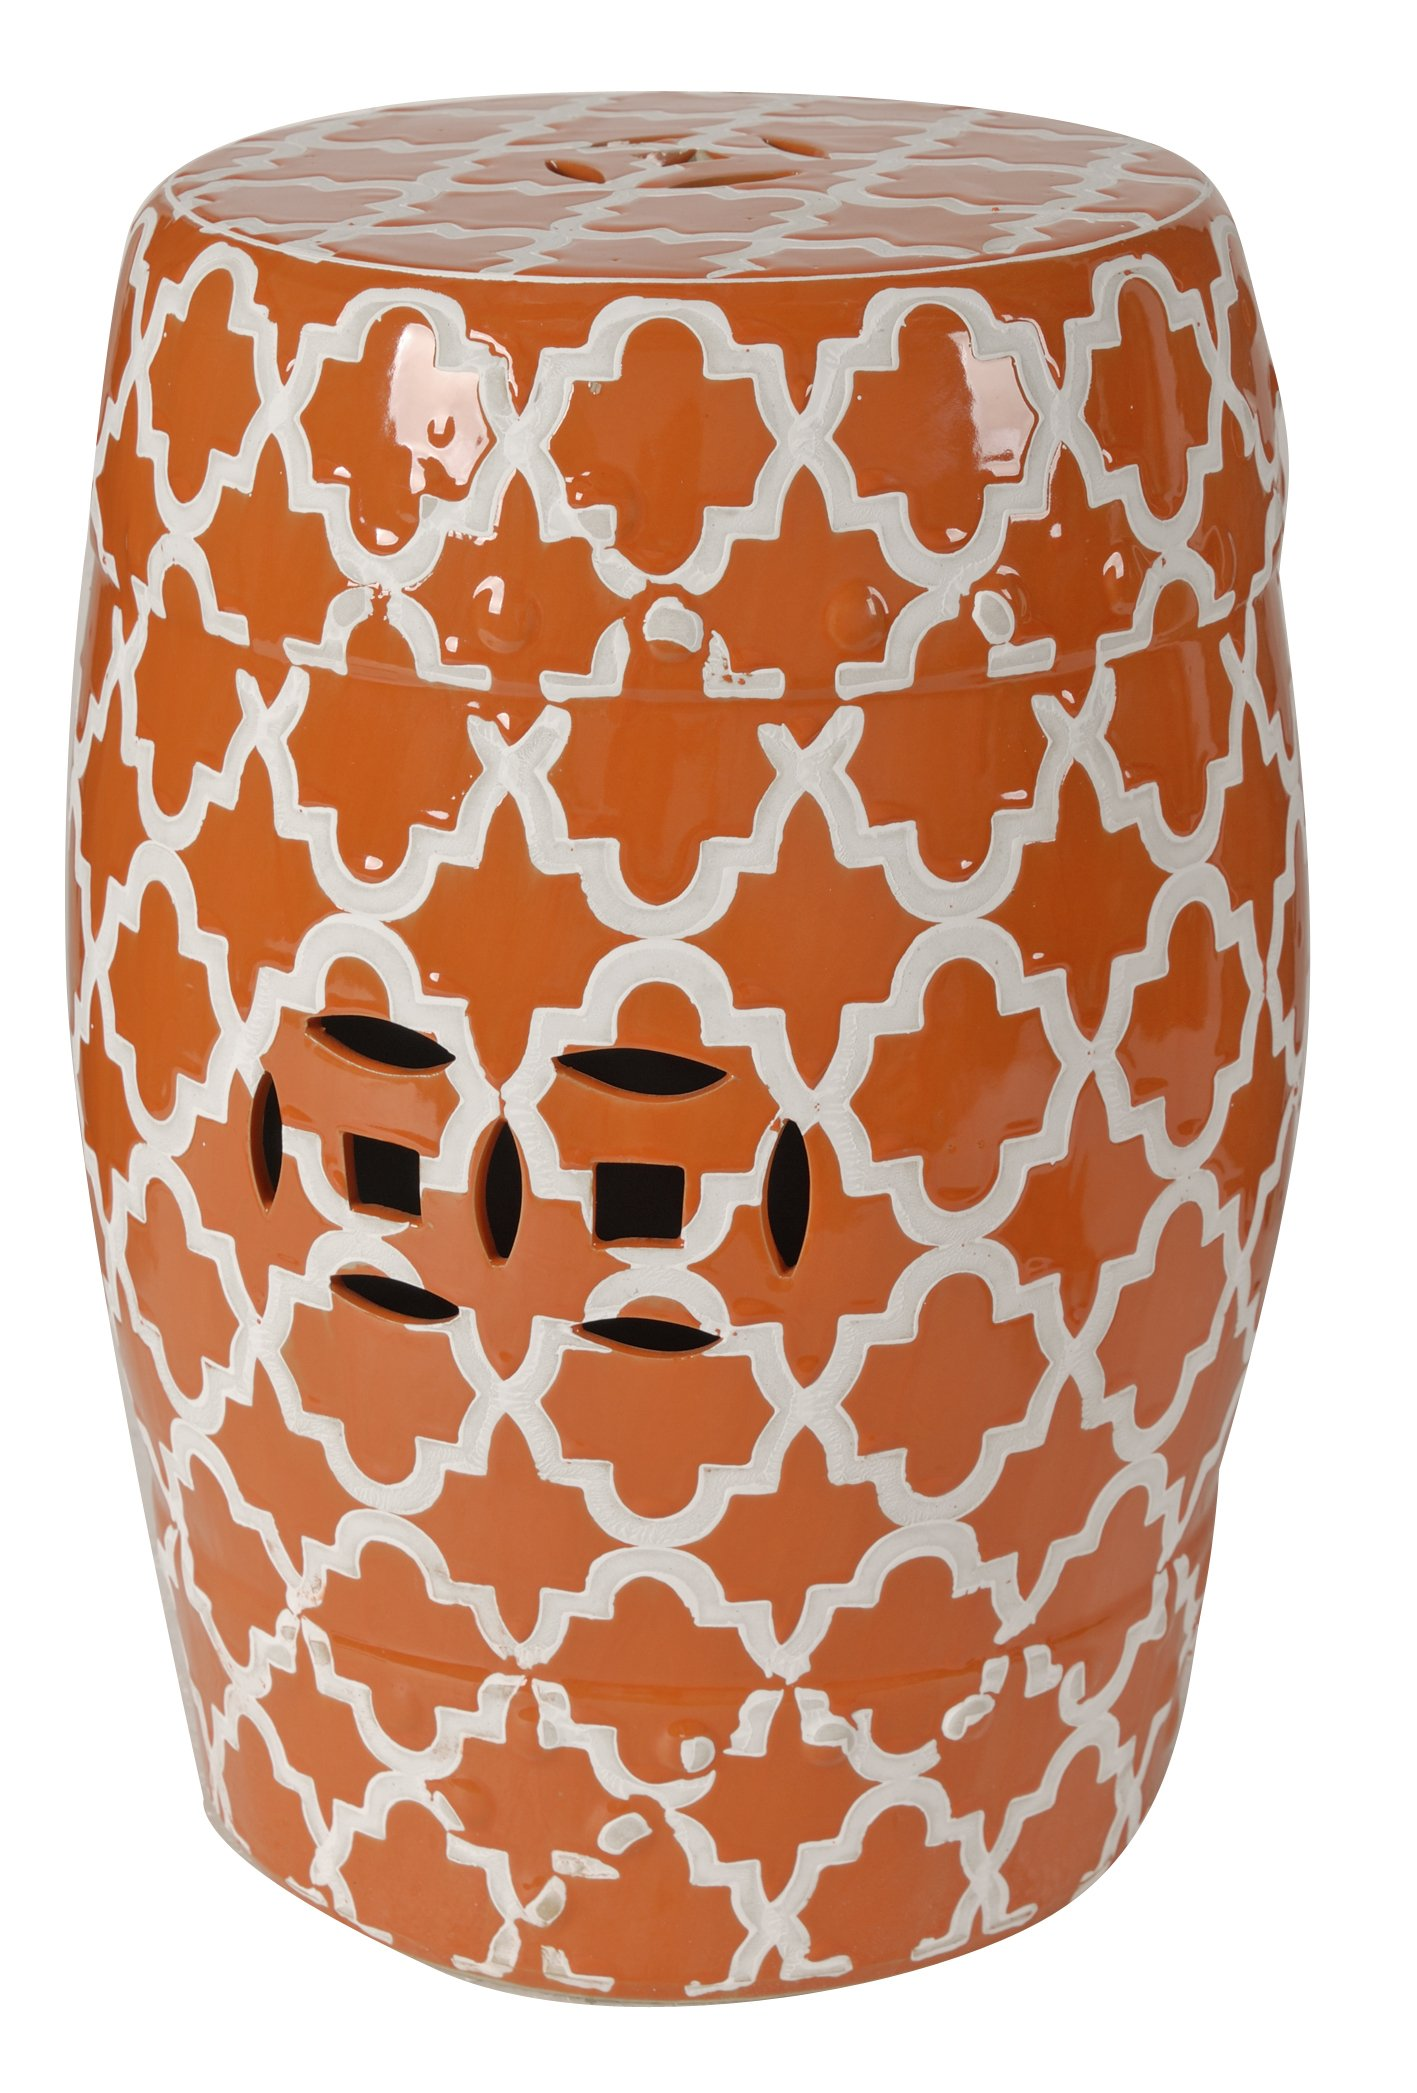 A&B Home 69634-ORAN Finley Indoor/Outdoor Patterned Stool, Orange by A&B Home